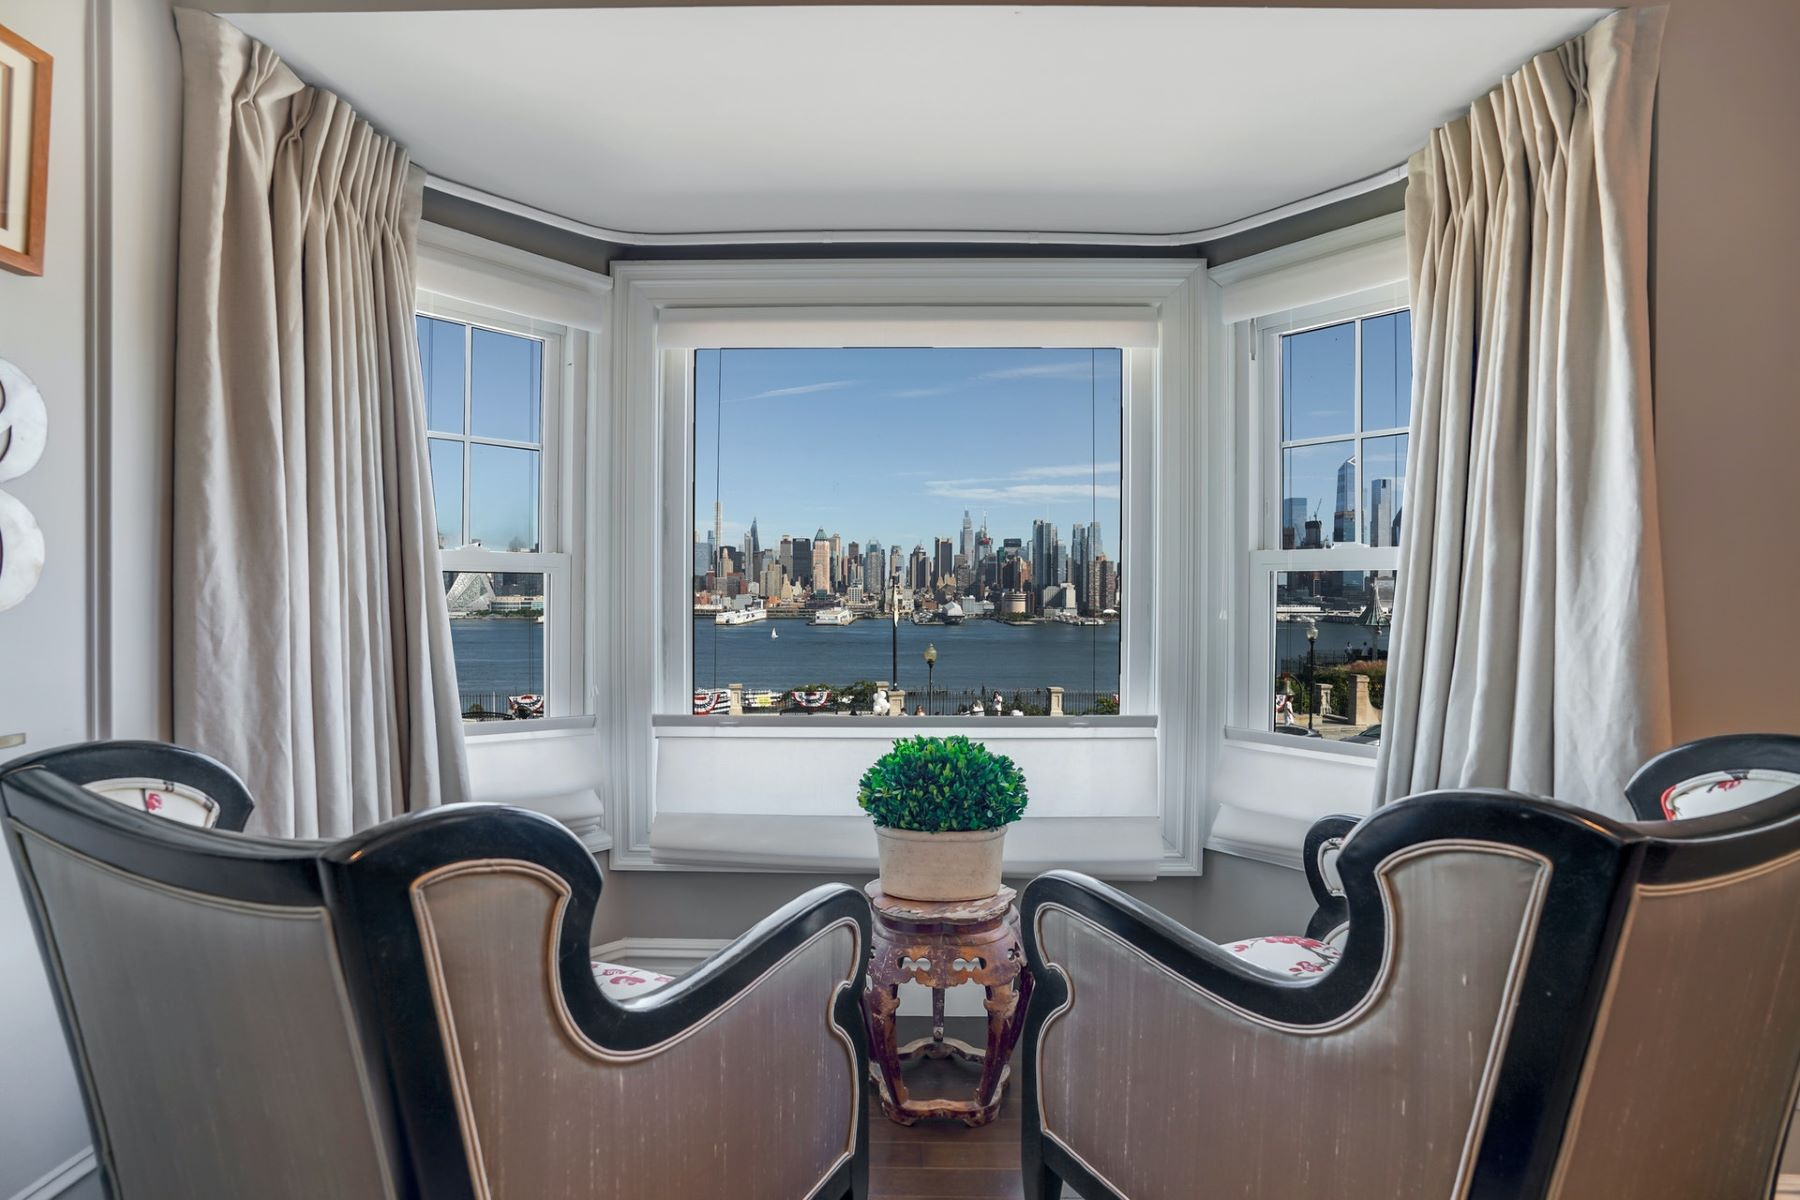 Single Family Homes for Sale at Envelope yourself in sheer luxury 807 BLVD East, Weehawken, New Jersey 07086 United States